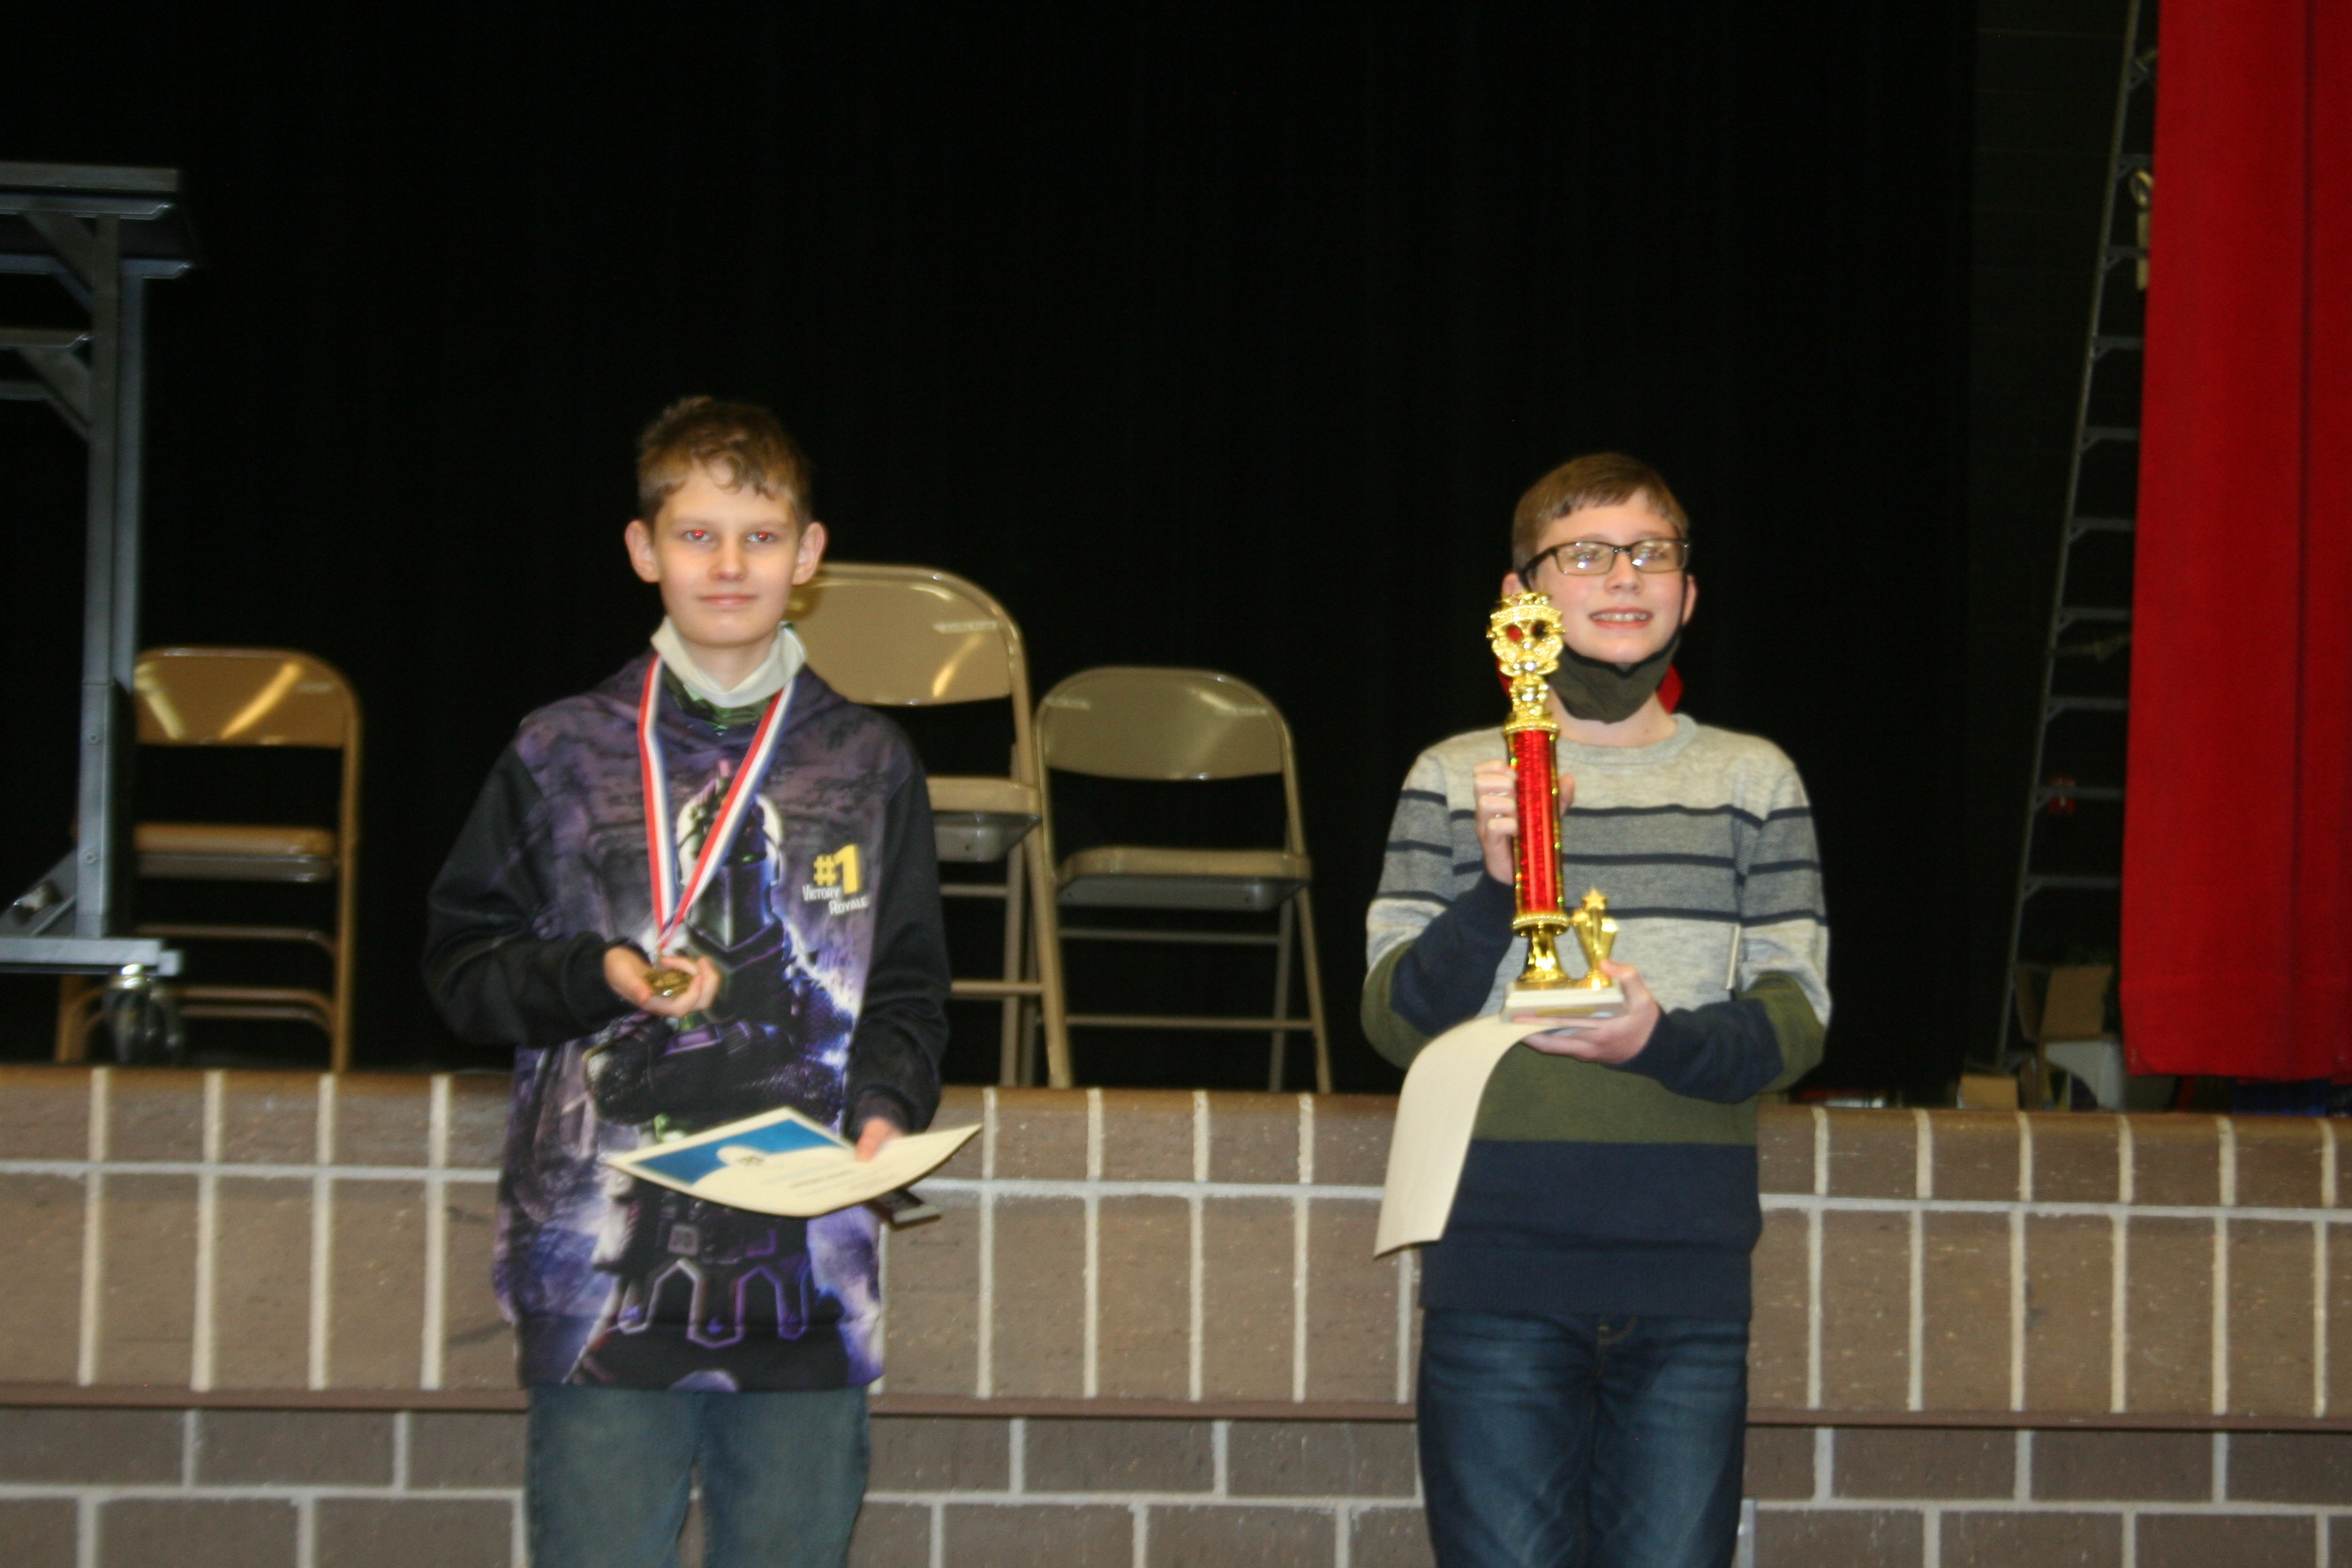 Hanke wins Sedgwick spelling bee with 'pastry'